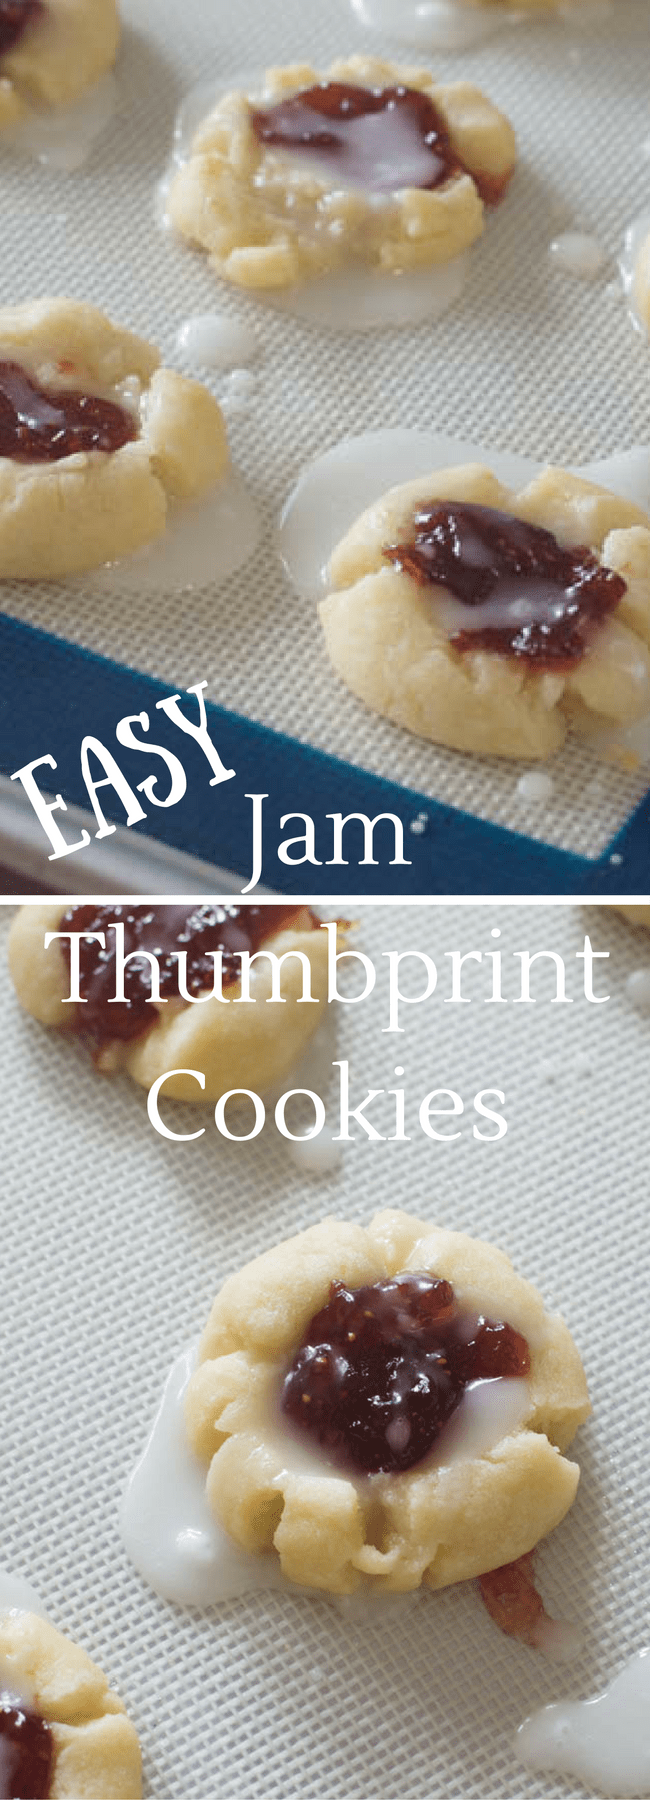 The best thumbprint cookie recipe / thumbprint cookies recipe thumbprint cookies easy / thumbprint cookies jam /thumbprint cookies with icing / thumbprint cookies /thumbprint cookies... / thumbprint cookies and more! via @clarkscondensed